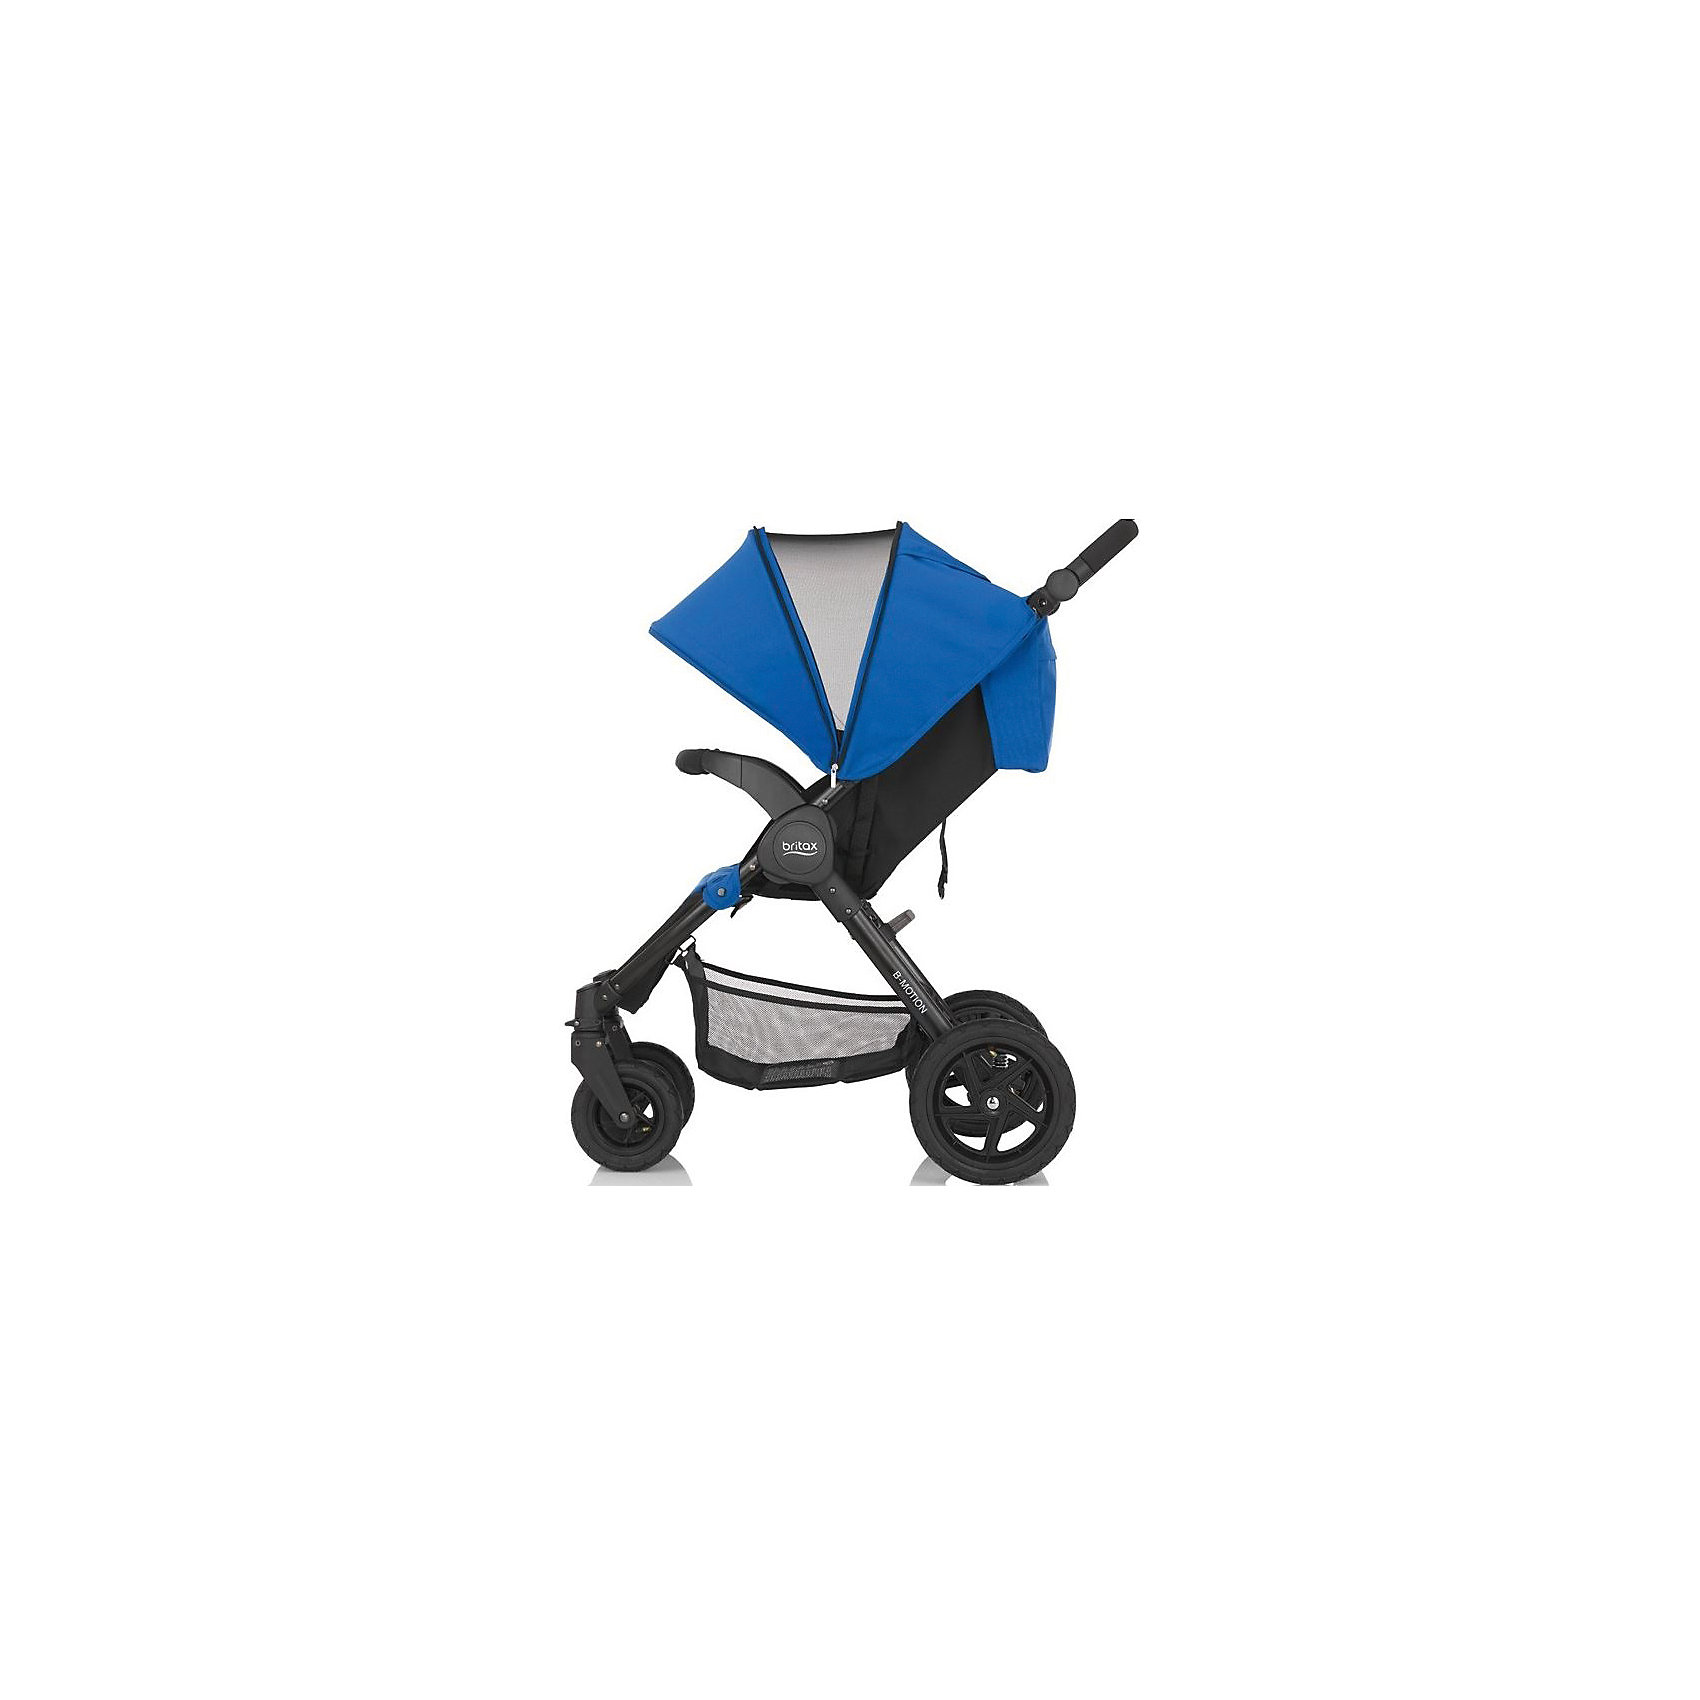 ����������� ������� B-Motion 4, Britax, Wood Brown